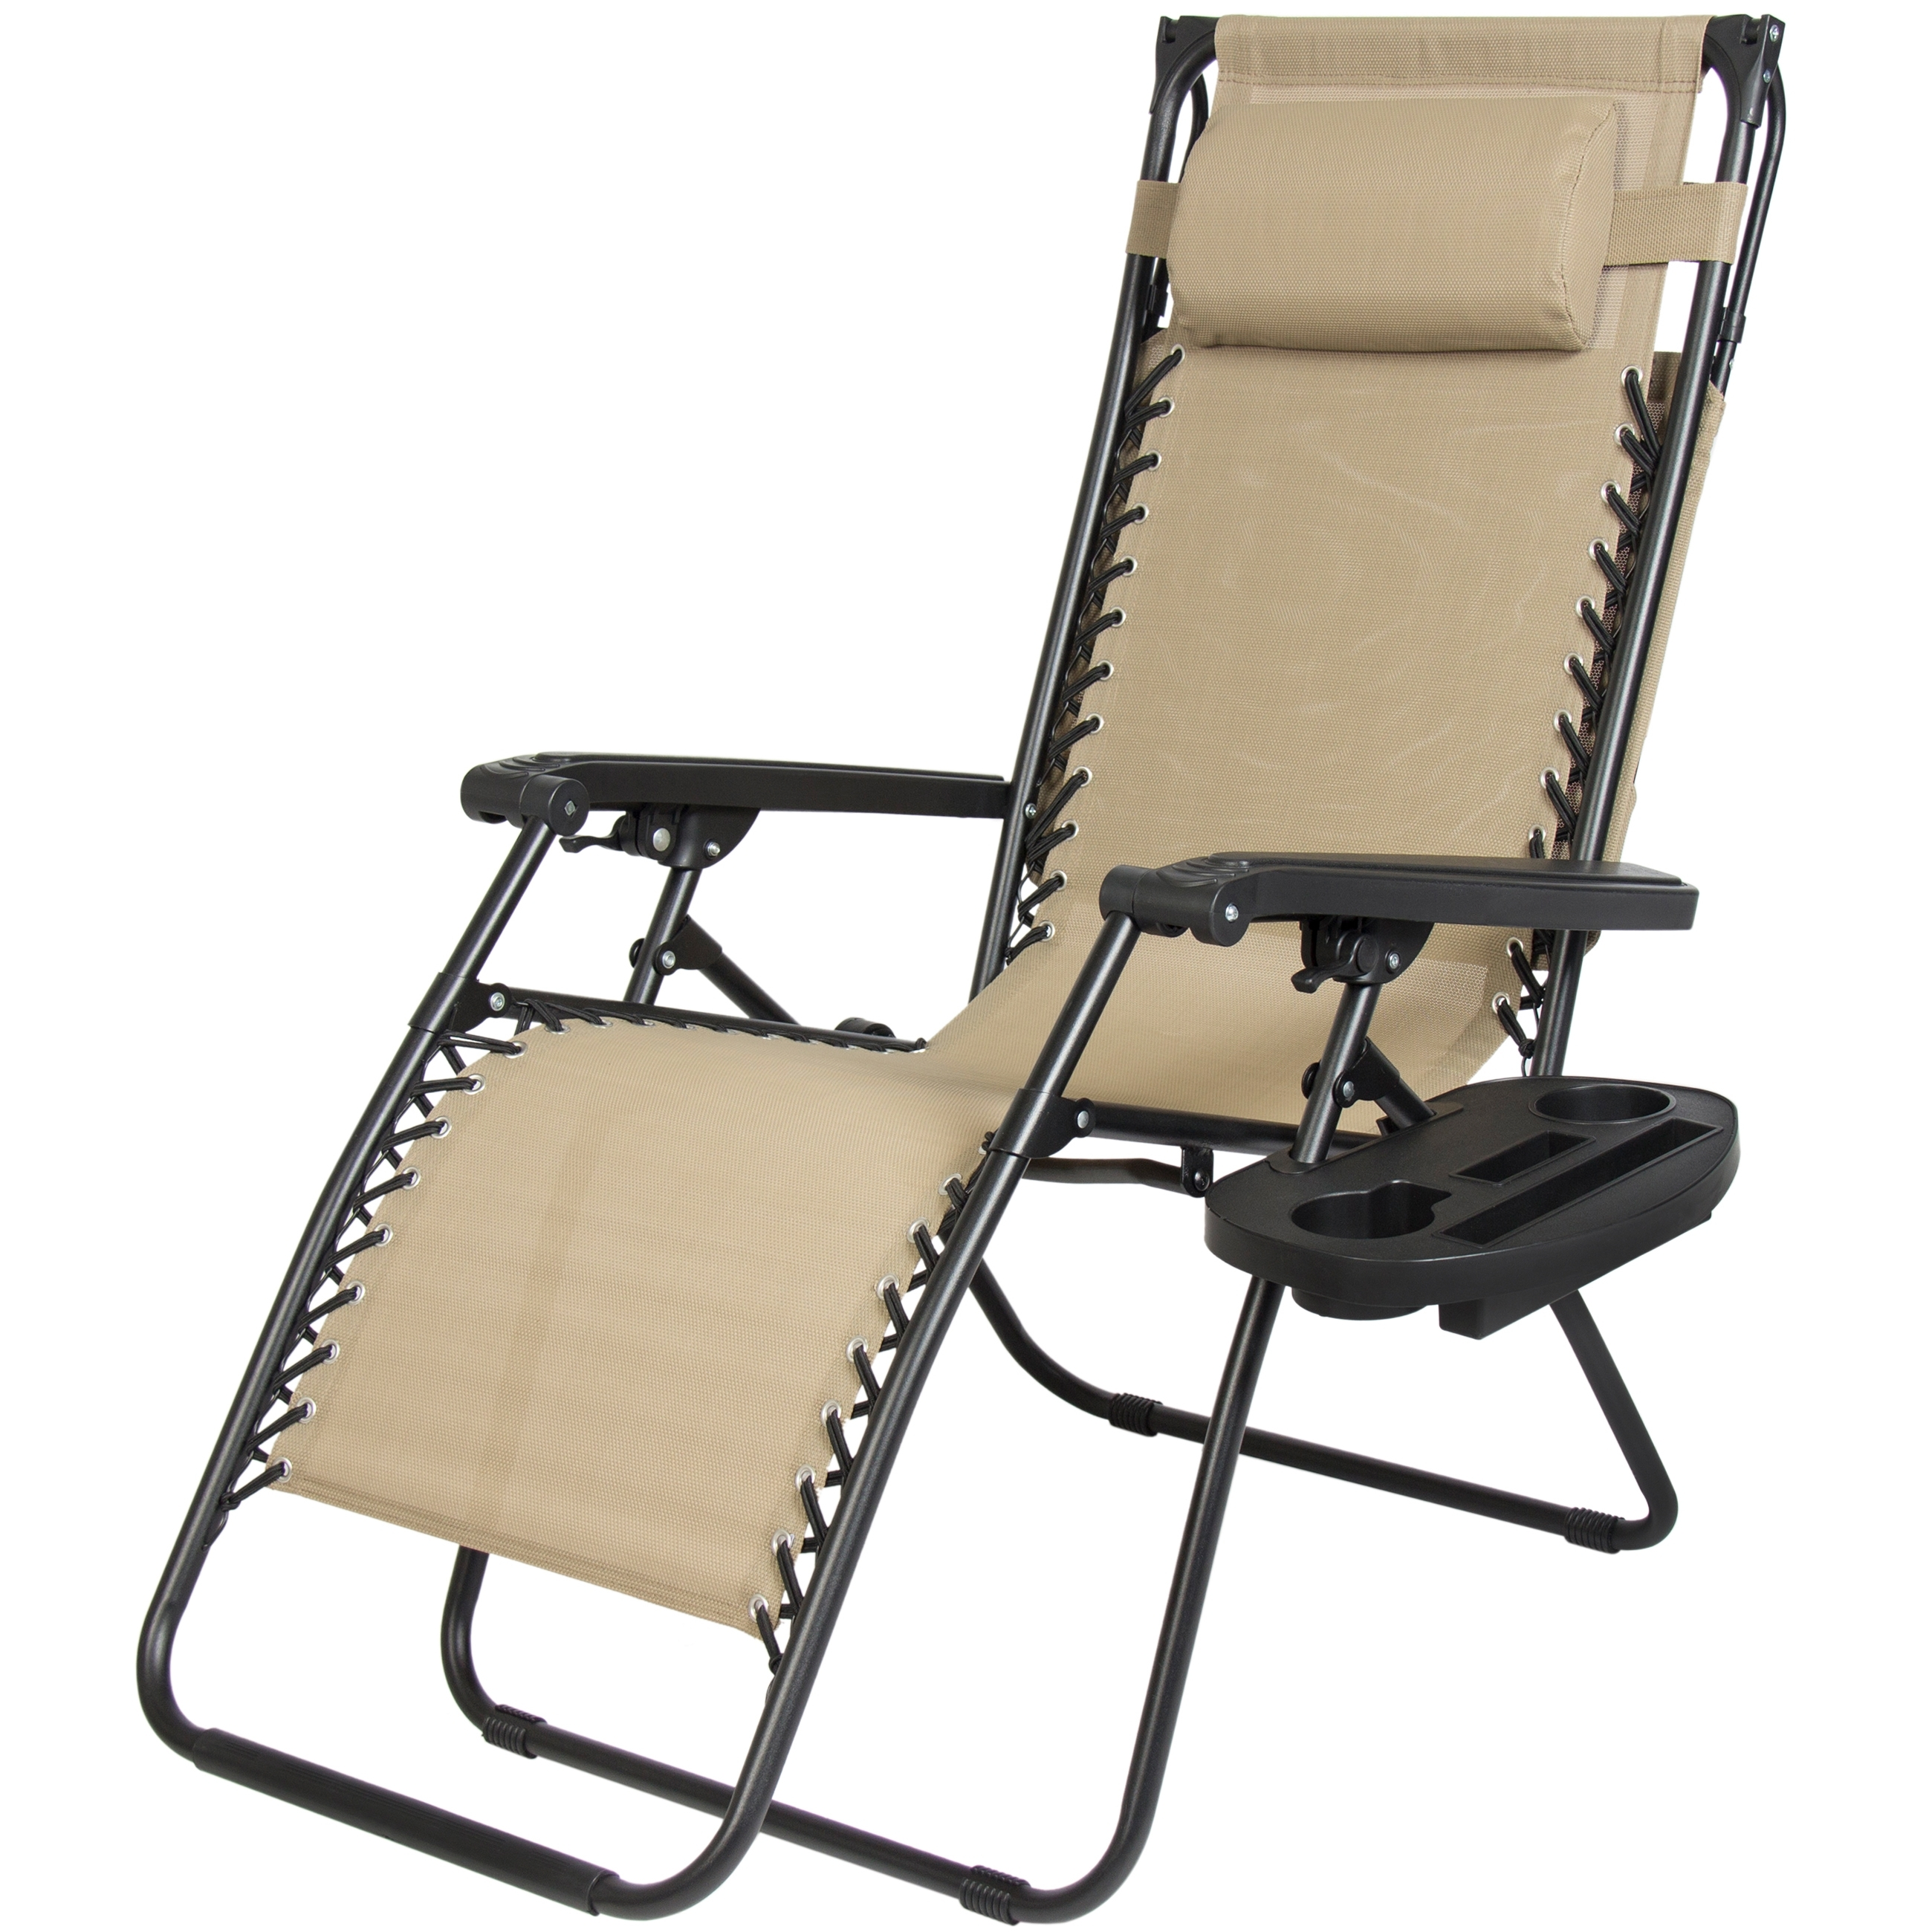 Furniture: Stylish Lowes Lounge Chairs For Your Relax With Trendy Chaise Lounge Chairs At Target (View 12 of 15)